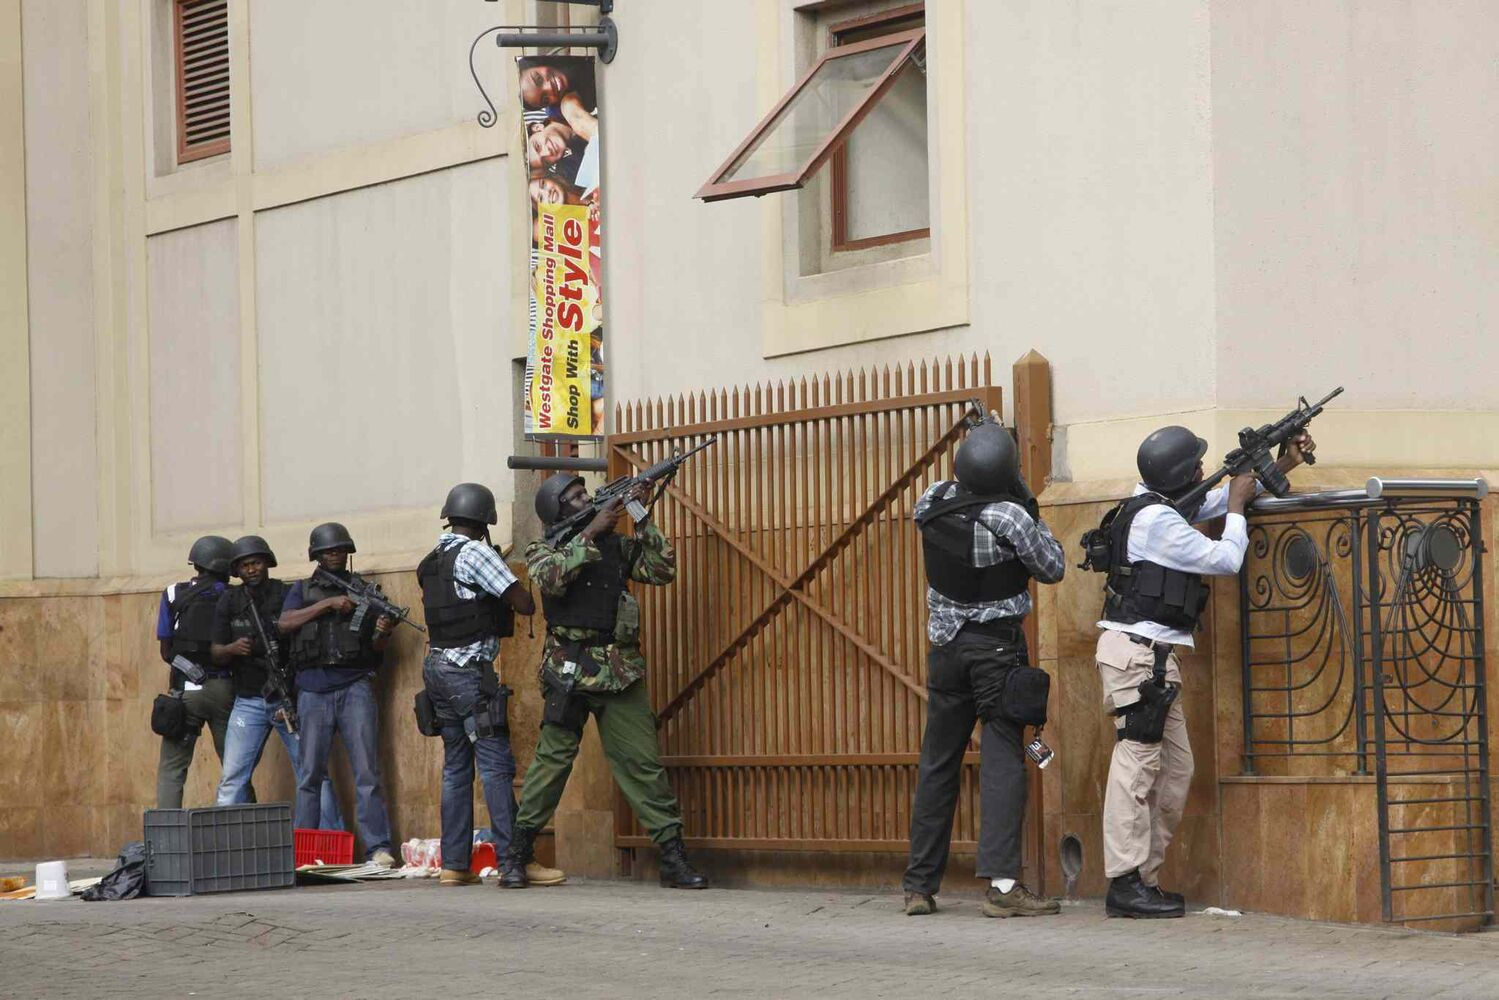 Armed special forces aim their weapons at the Westgate Mall in Nairobi, Kenya, Saturday after gunmen threw grenades and opened fire during an attack that left multiple dead and dozens wounded. A witness to the attacks on the upscale shopping mall says that gunmen told Muslims to stand up and leave and that non-Muslims would be targeted. (Khalil Senosi / The Associated Press)